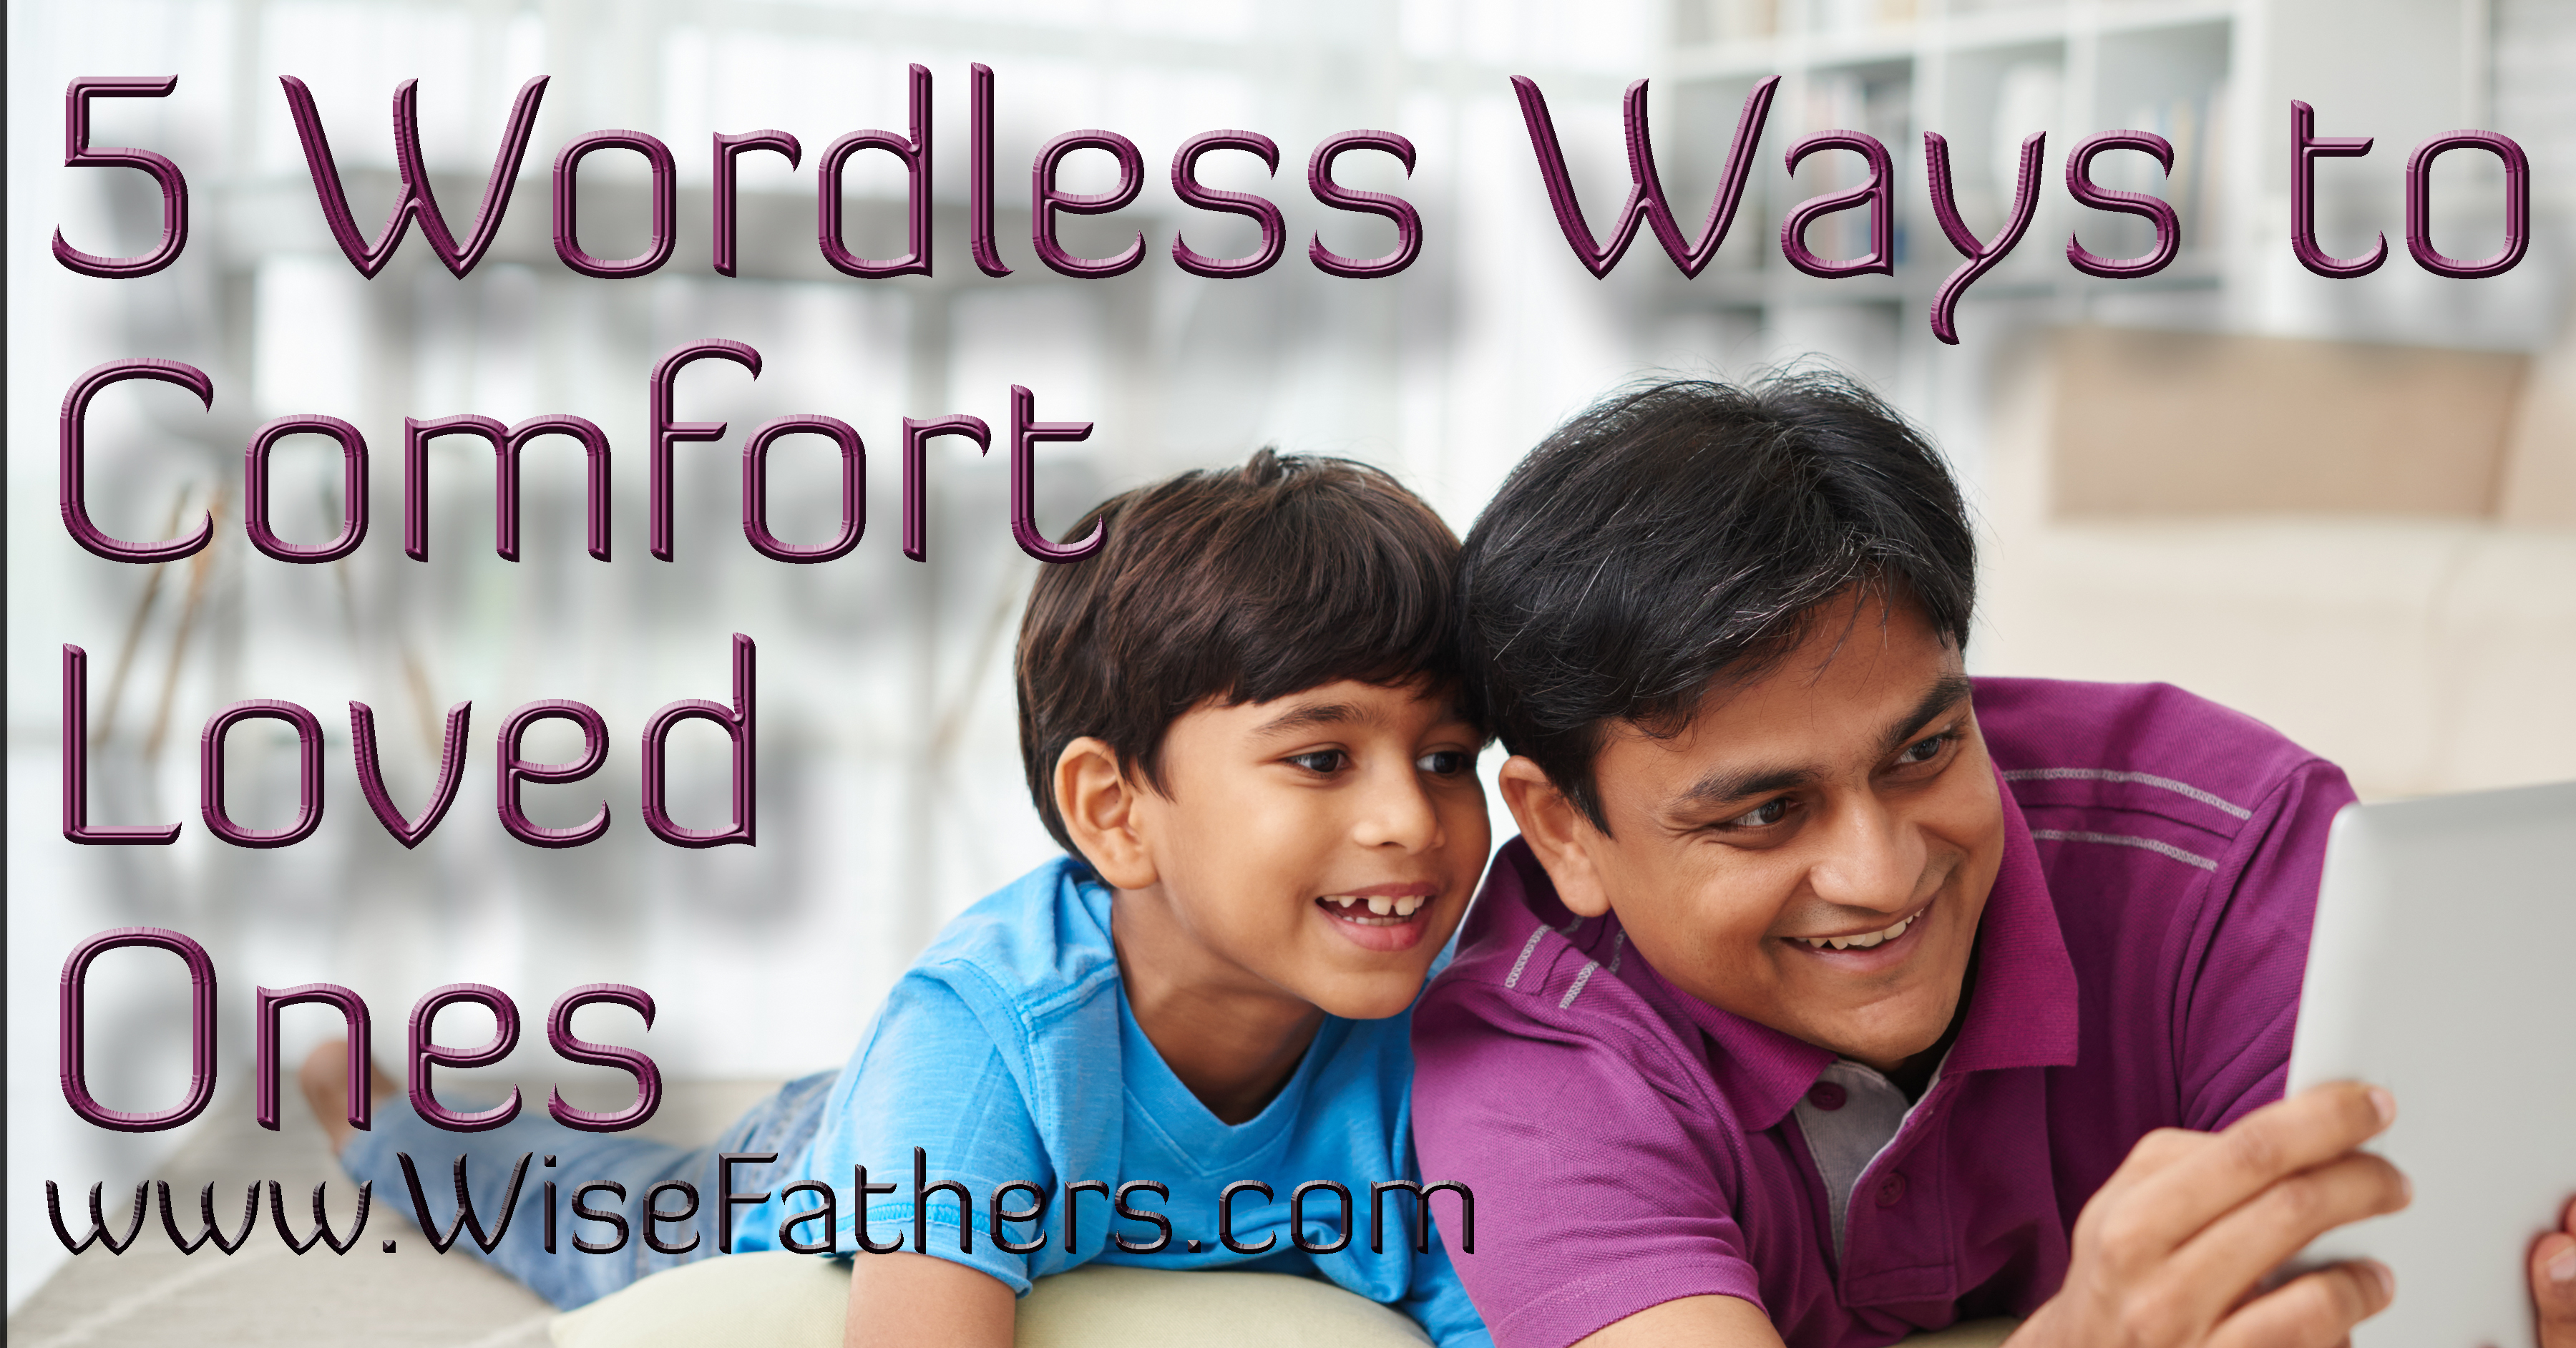 5 Wordless Ways to Comfort